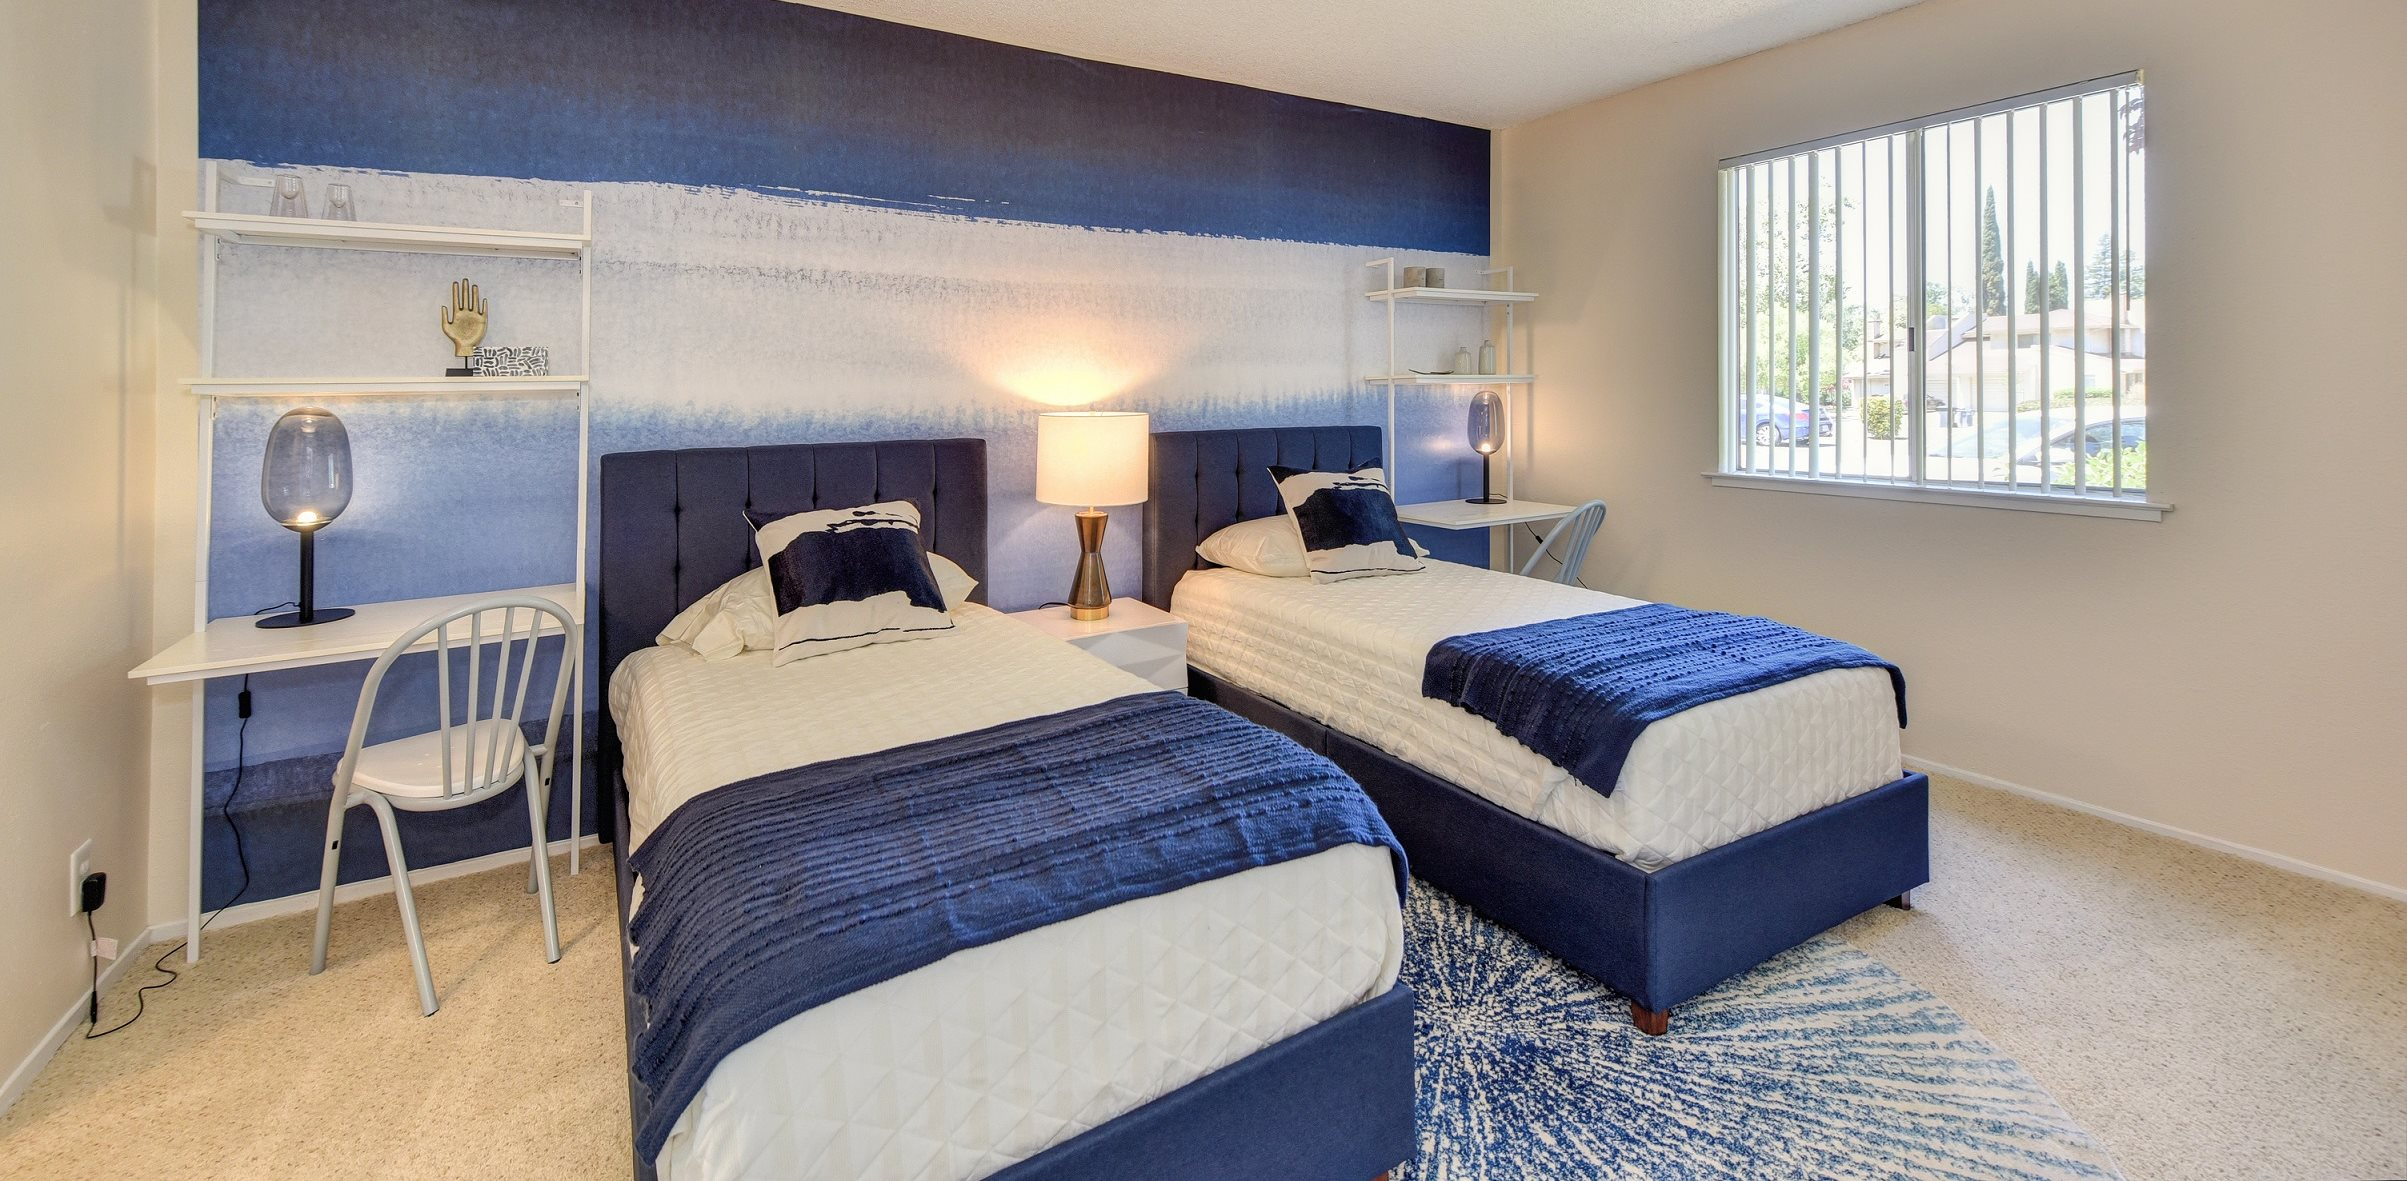 Model bedroom with blue and white accent wall and matching bedding.  Small desks on the sides of each of the two beds.